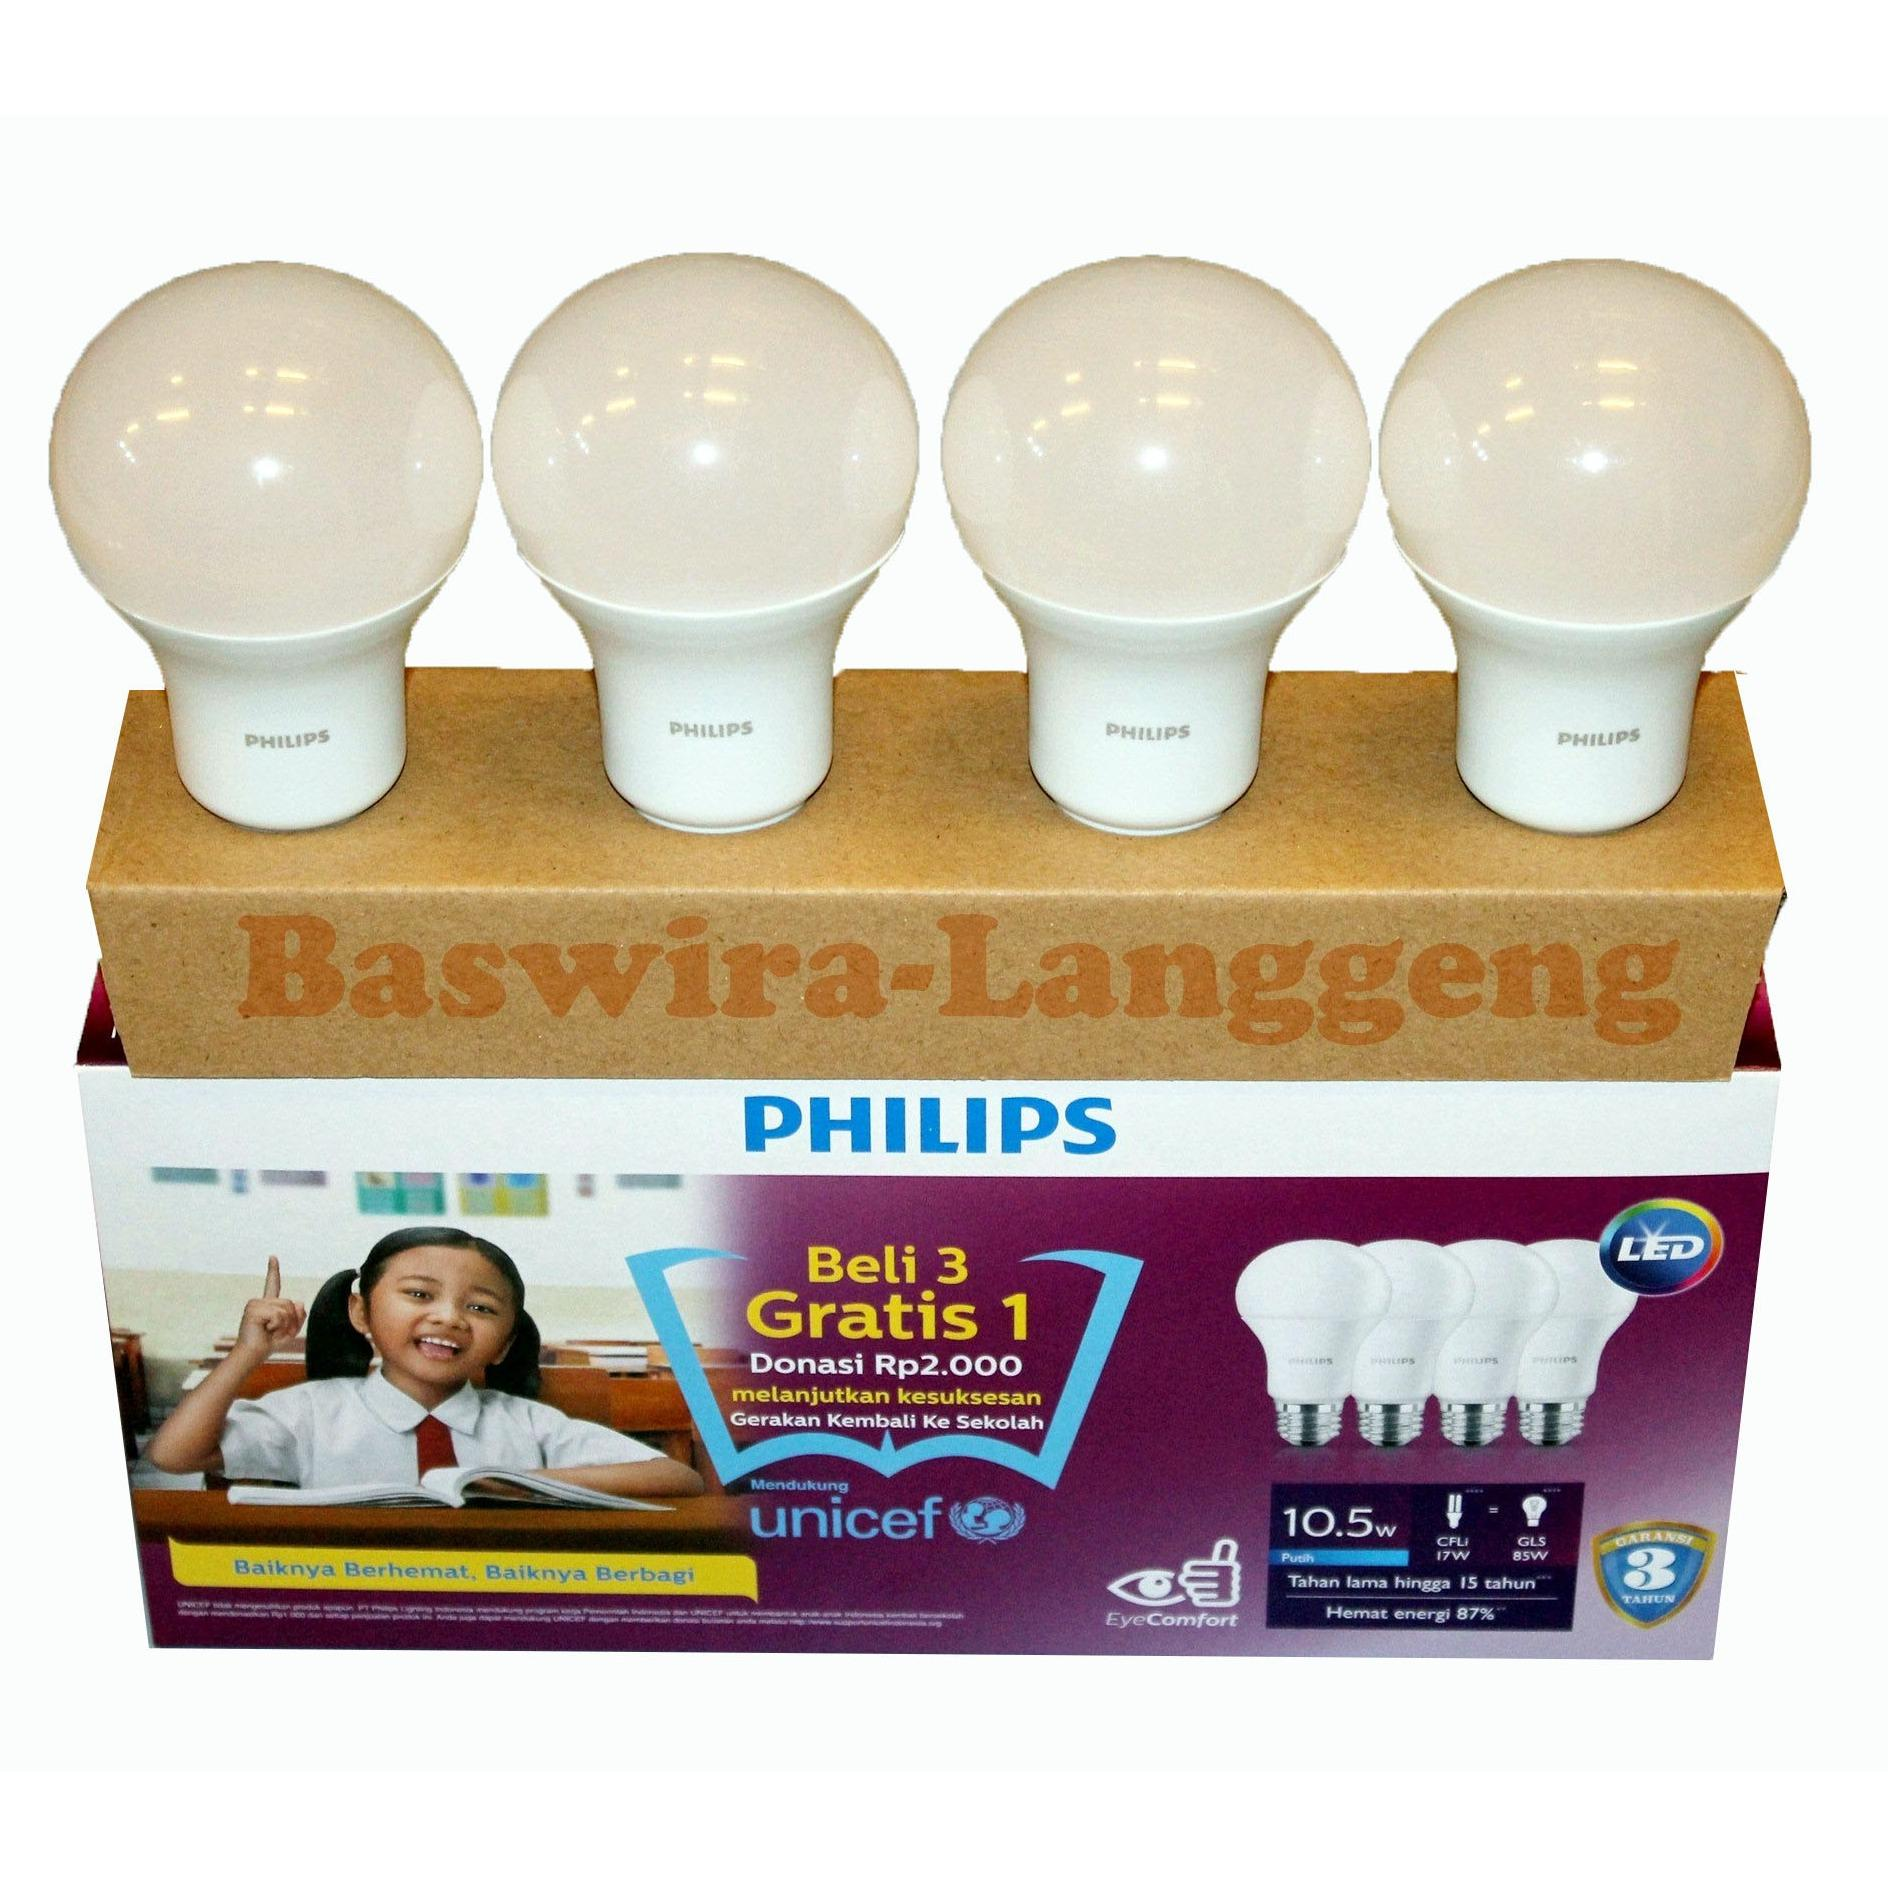 PHILIPS Led Bulb 10,5watt UNICEF Beli 3 gratis 1